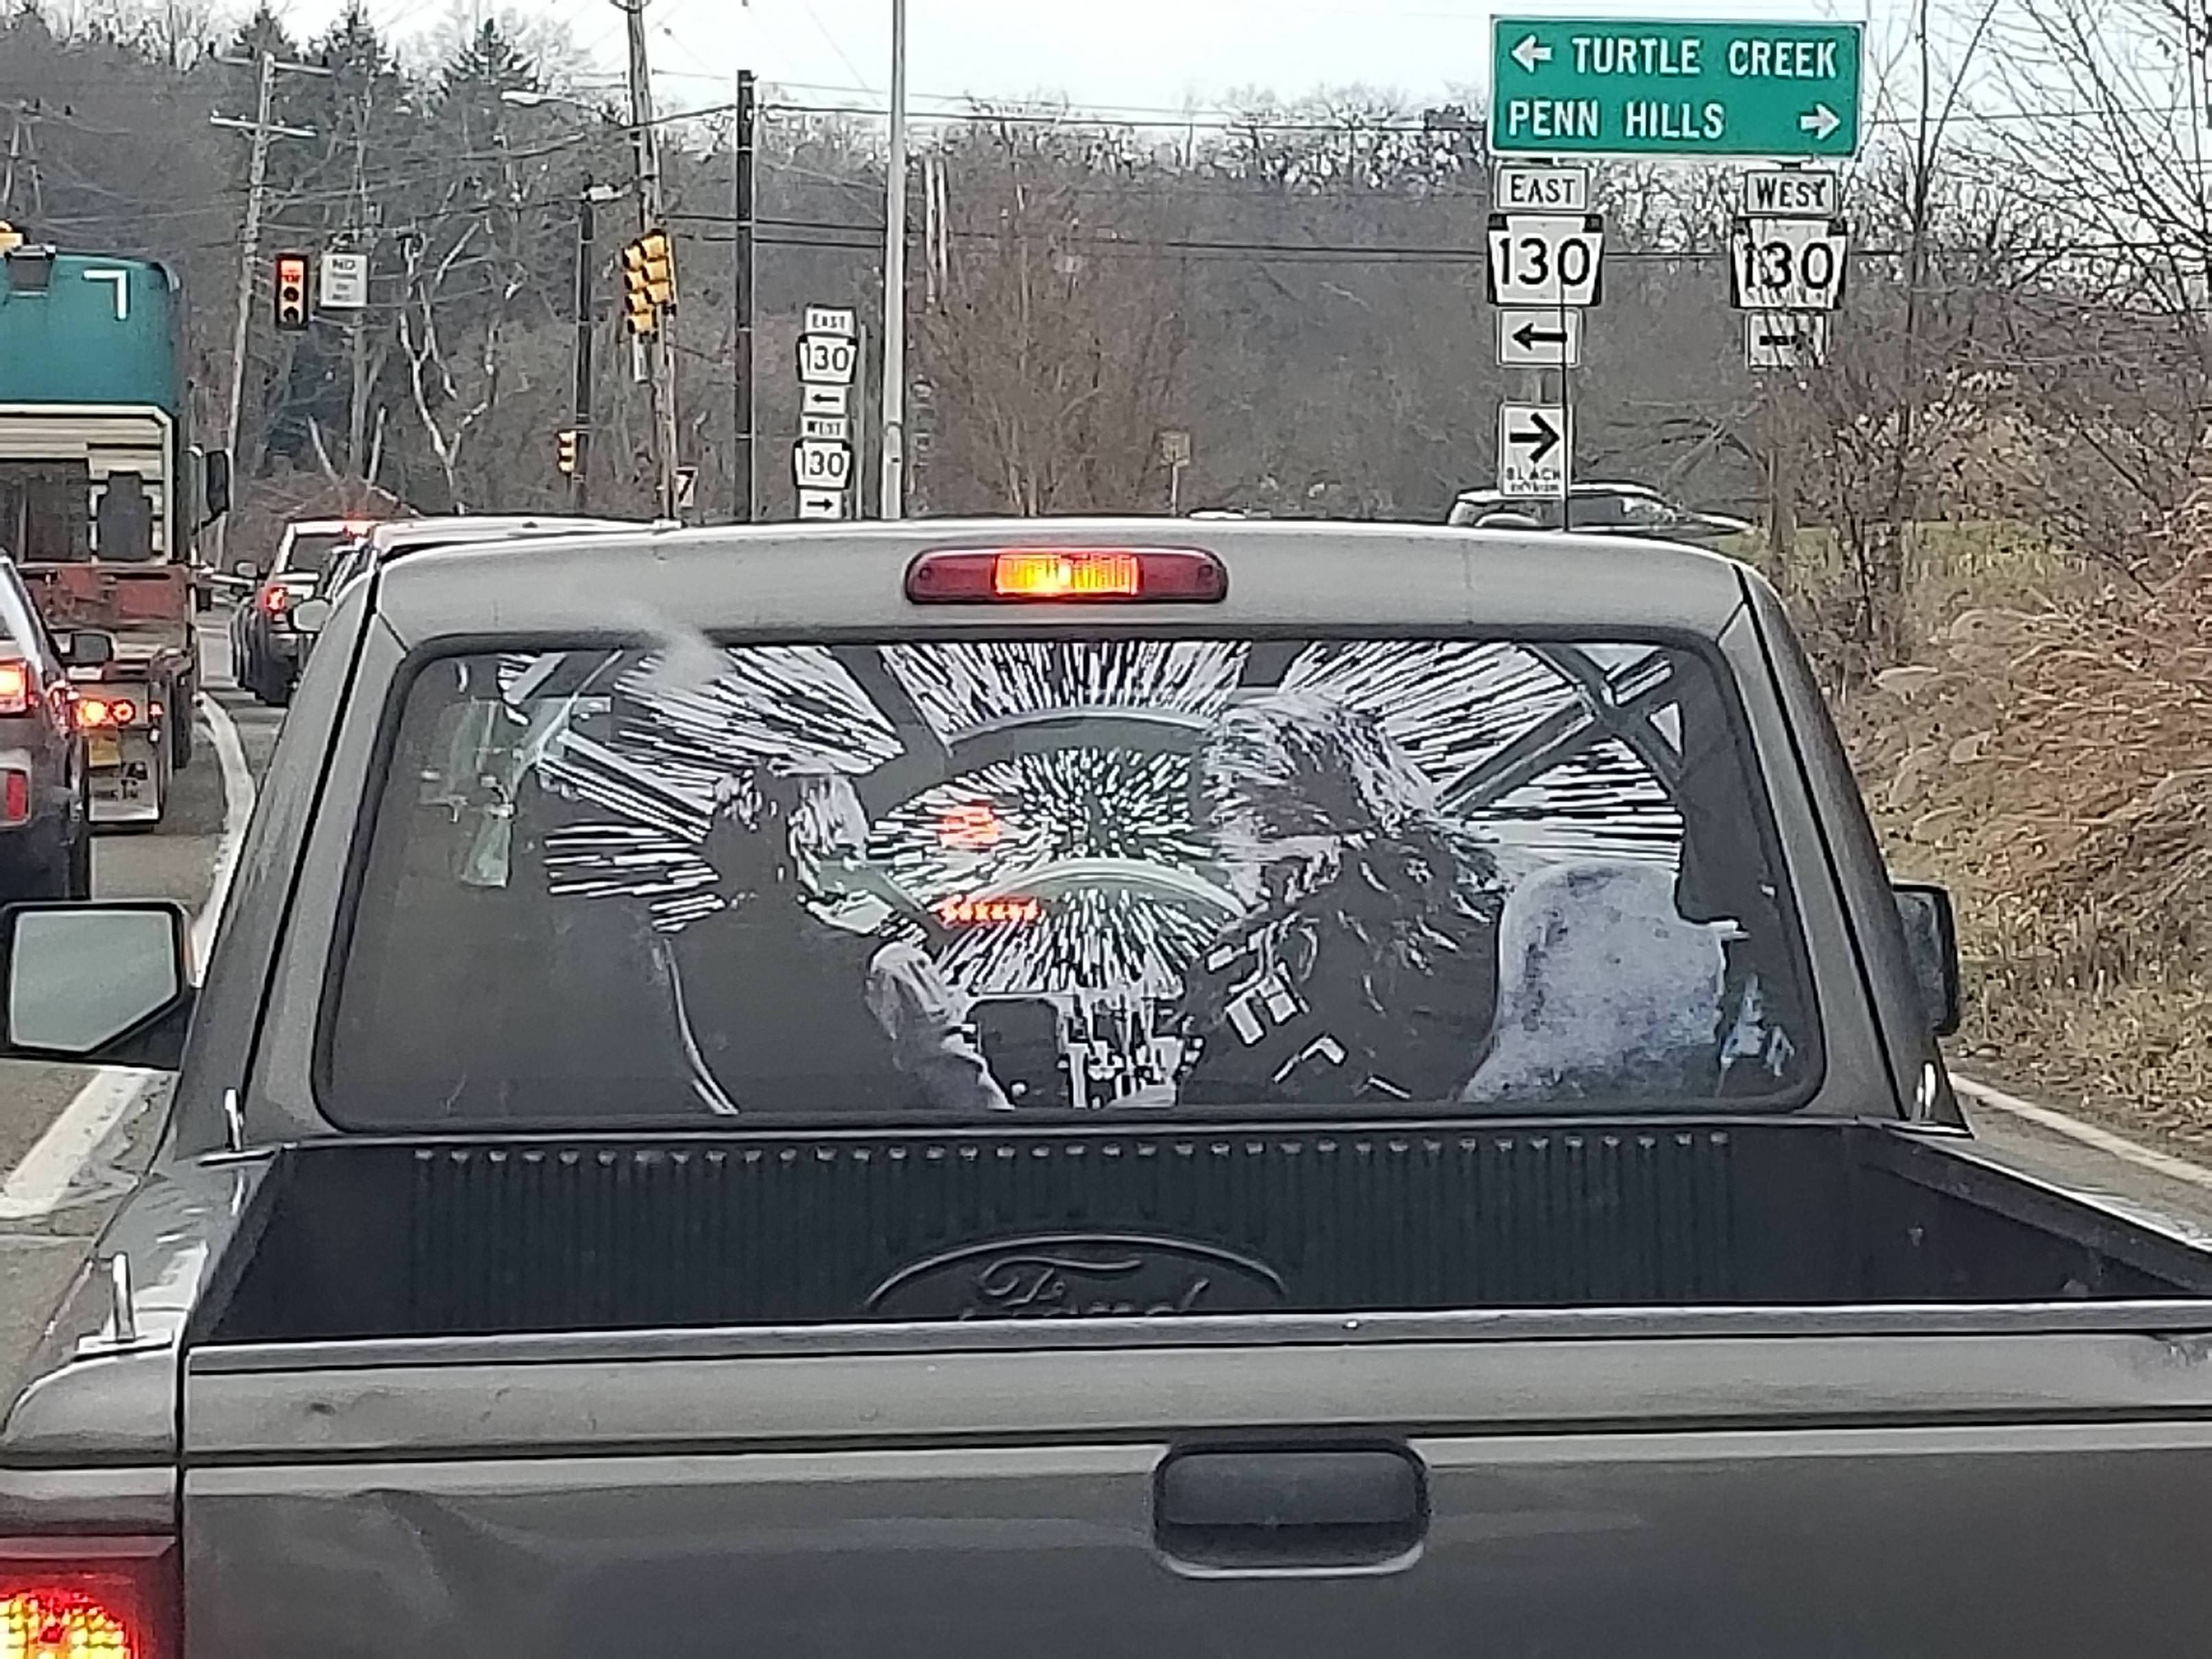 Saw this near Pittsburgh this morning